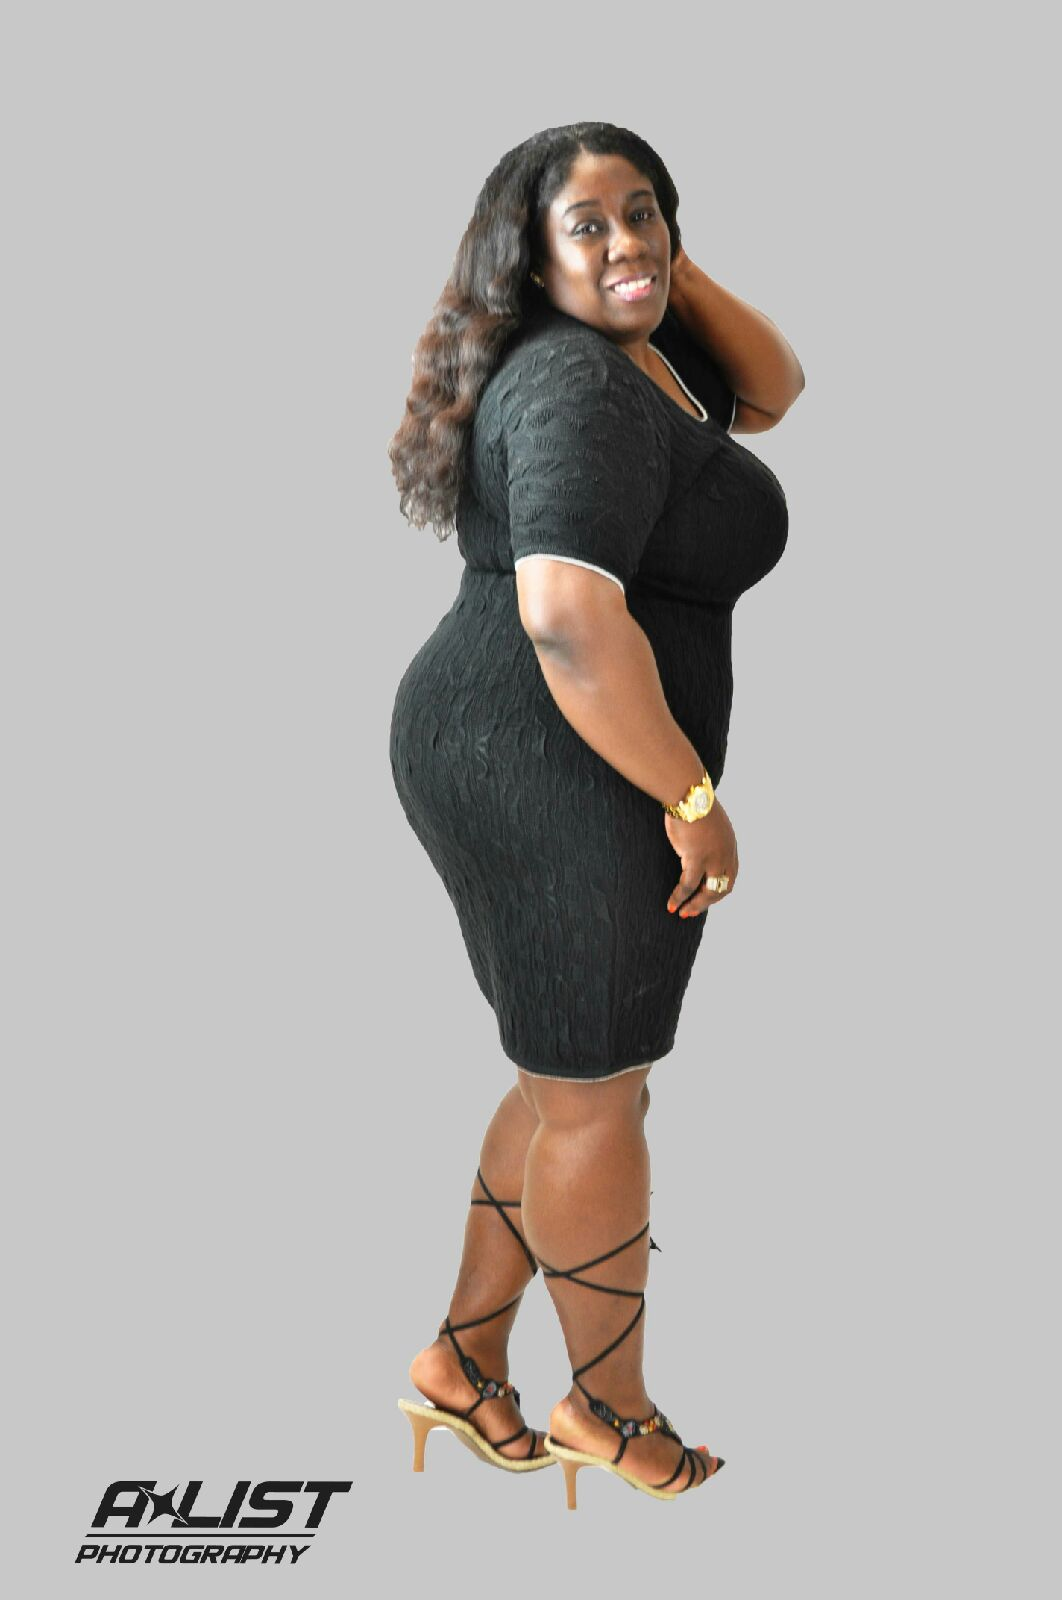 lasuria kandi allman interviews radio personality ikeisha baker hello thank you for ing my blog where lasuria kandi allman continues to put interesting people in the hot seat today she interviews radio personality